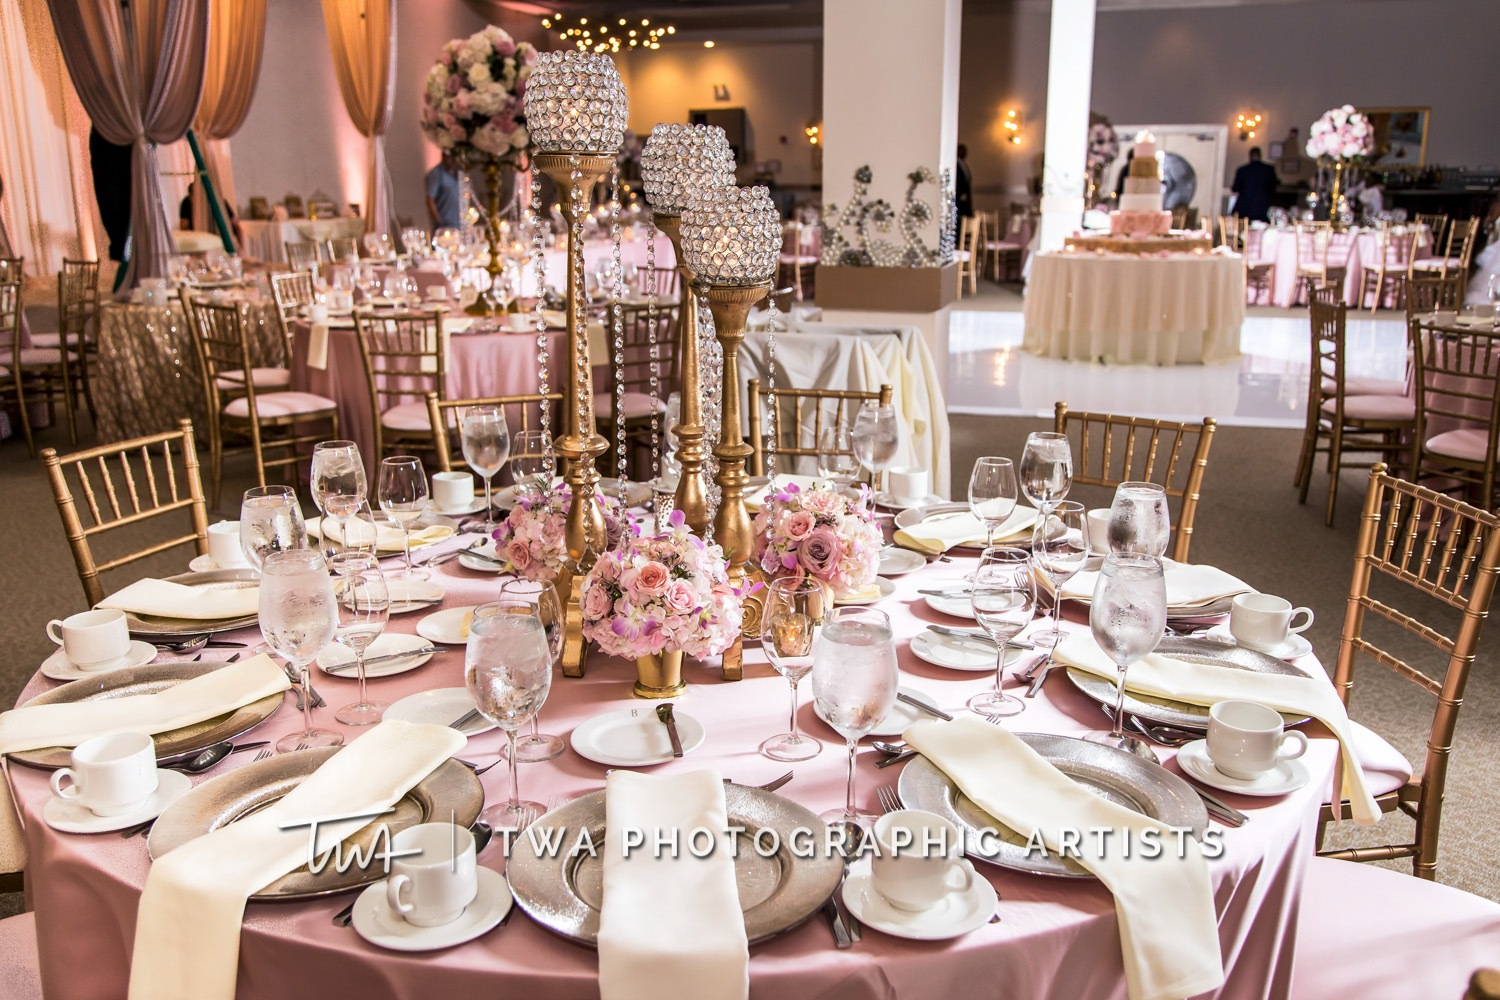 Chicago-Wedding-Photographer-TWA-Photographic-Artists-Belvedere-Banquets_Lavender_Chambers_SG-0381